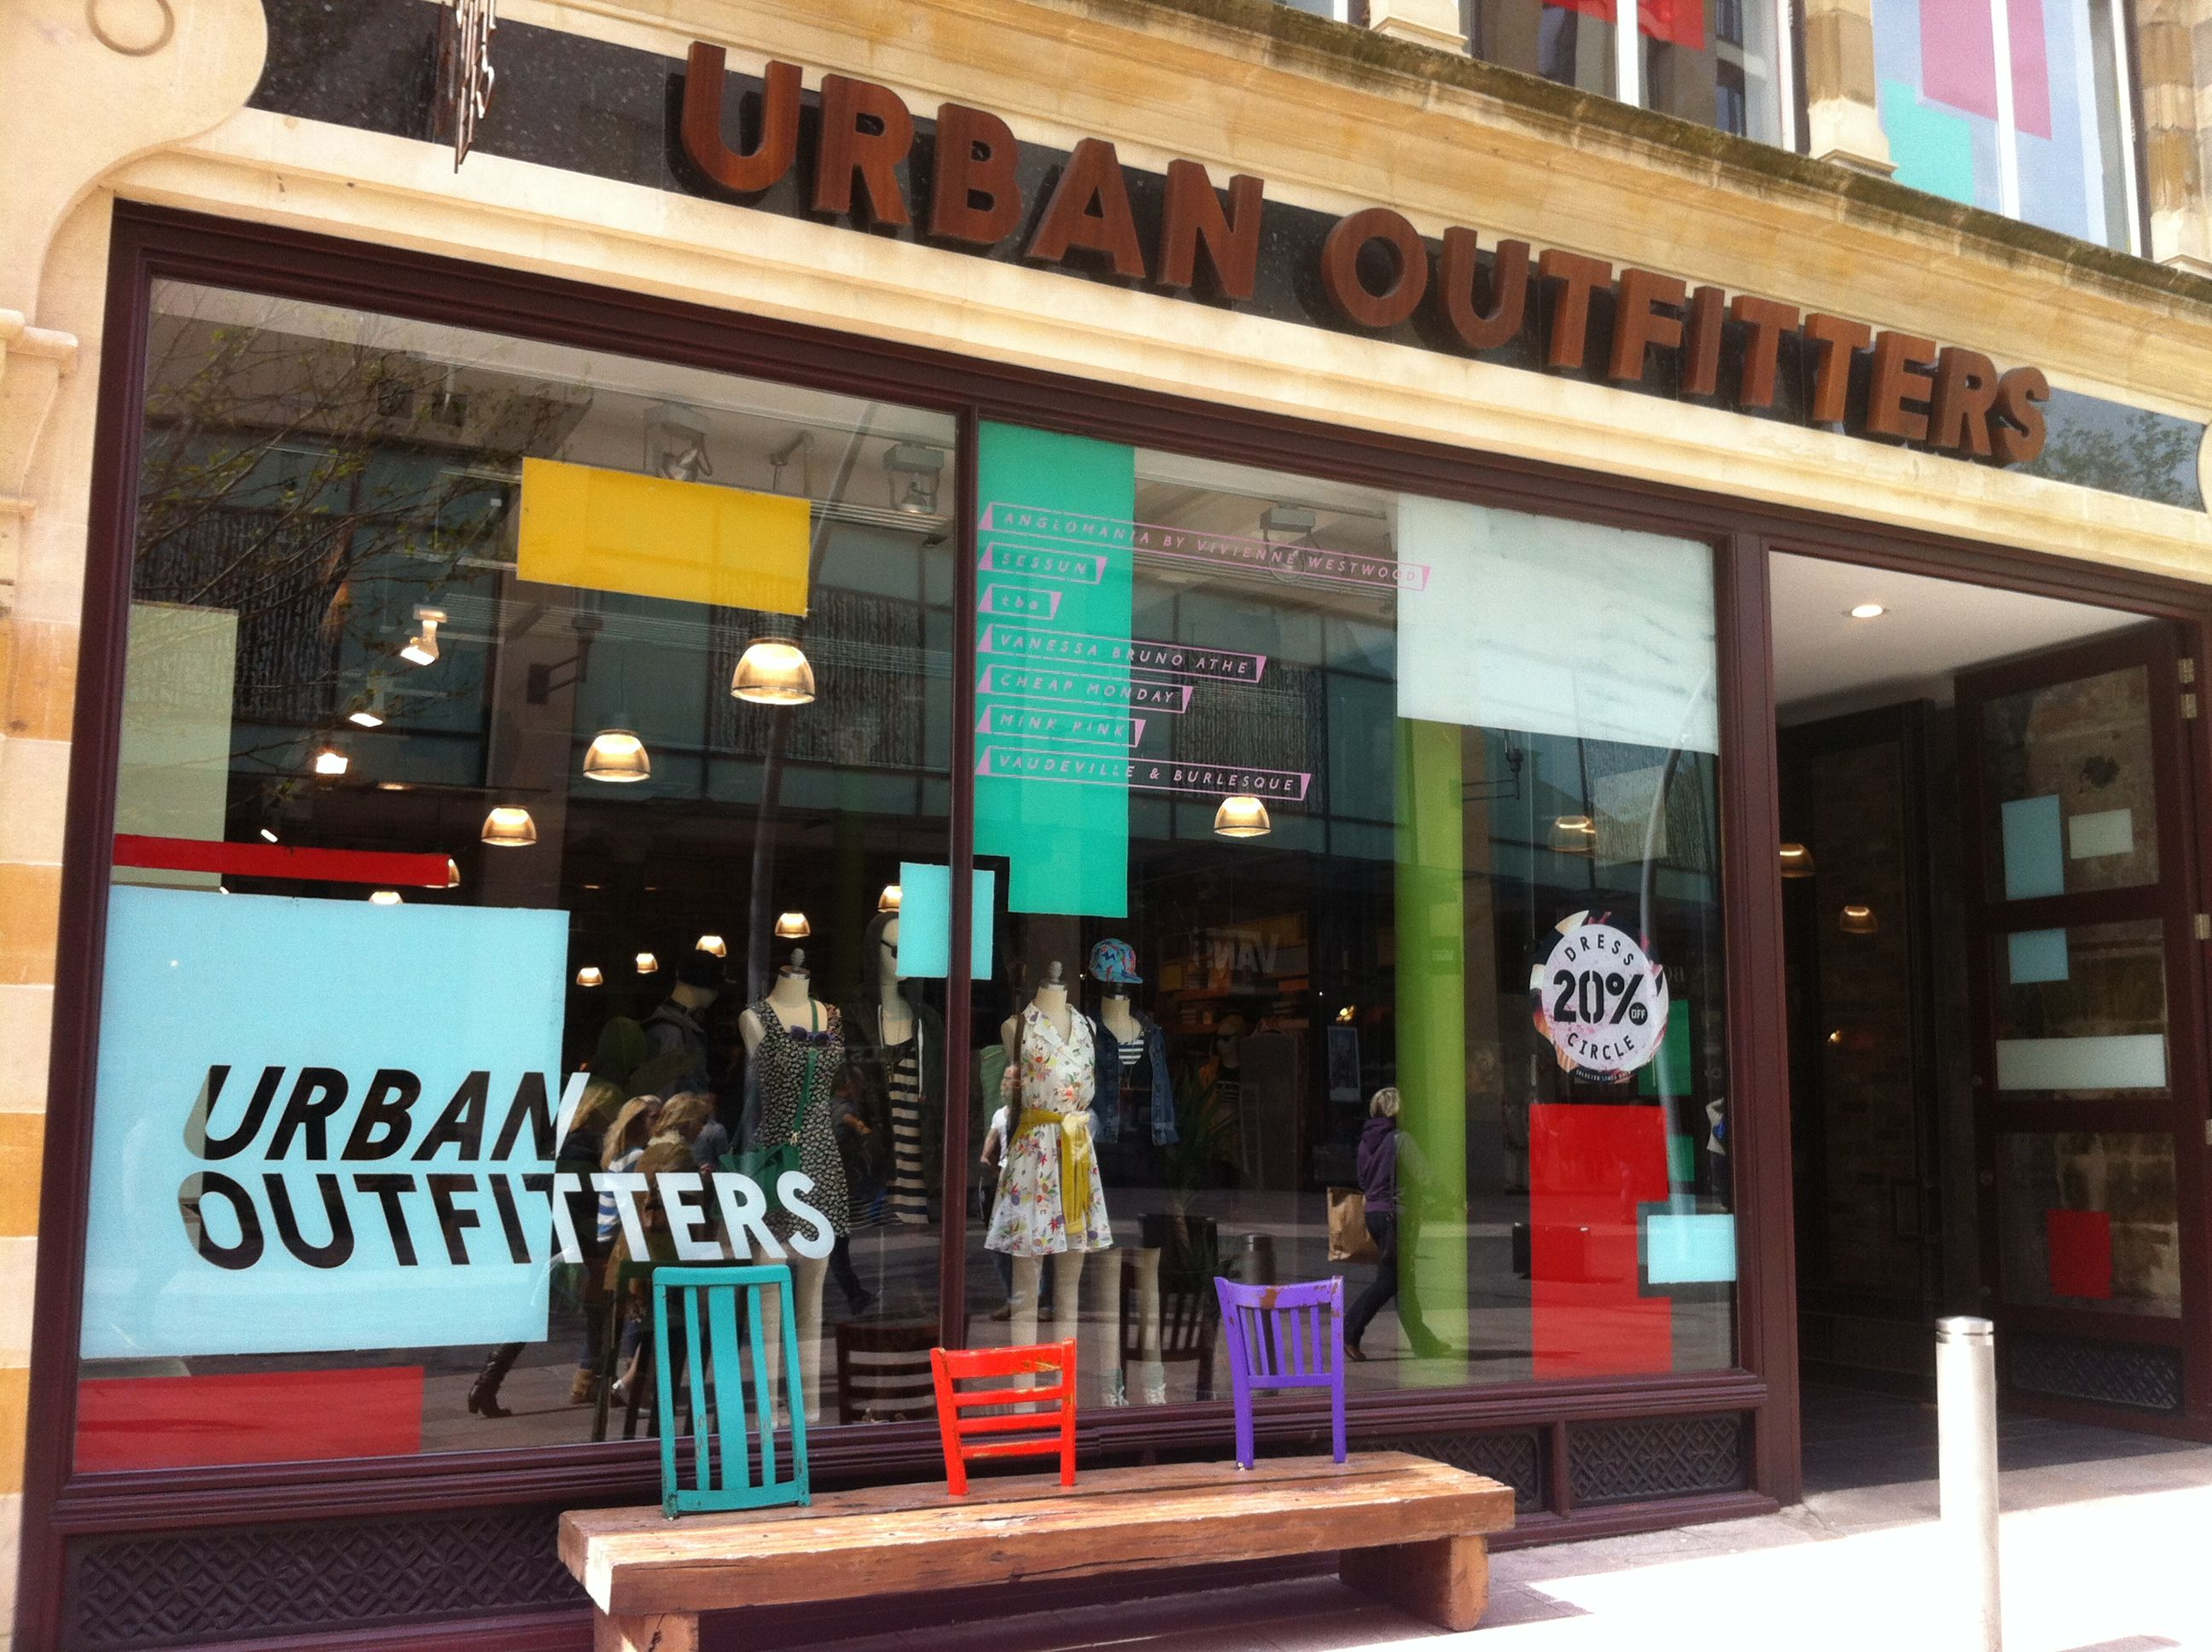 Urban Outfitters is a lifestyle retailer offering a mix of trendy women's and men's clothing, backpacks, beauty products, intimates, shoes, and hand-picked vintage clothing. They also provide everything you'll need to decorate your small space.